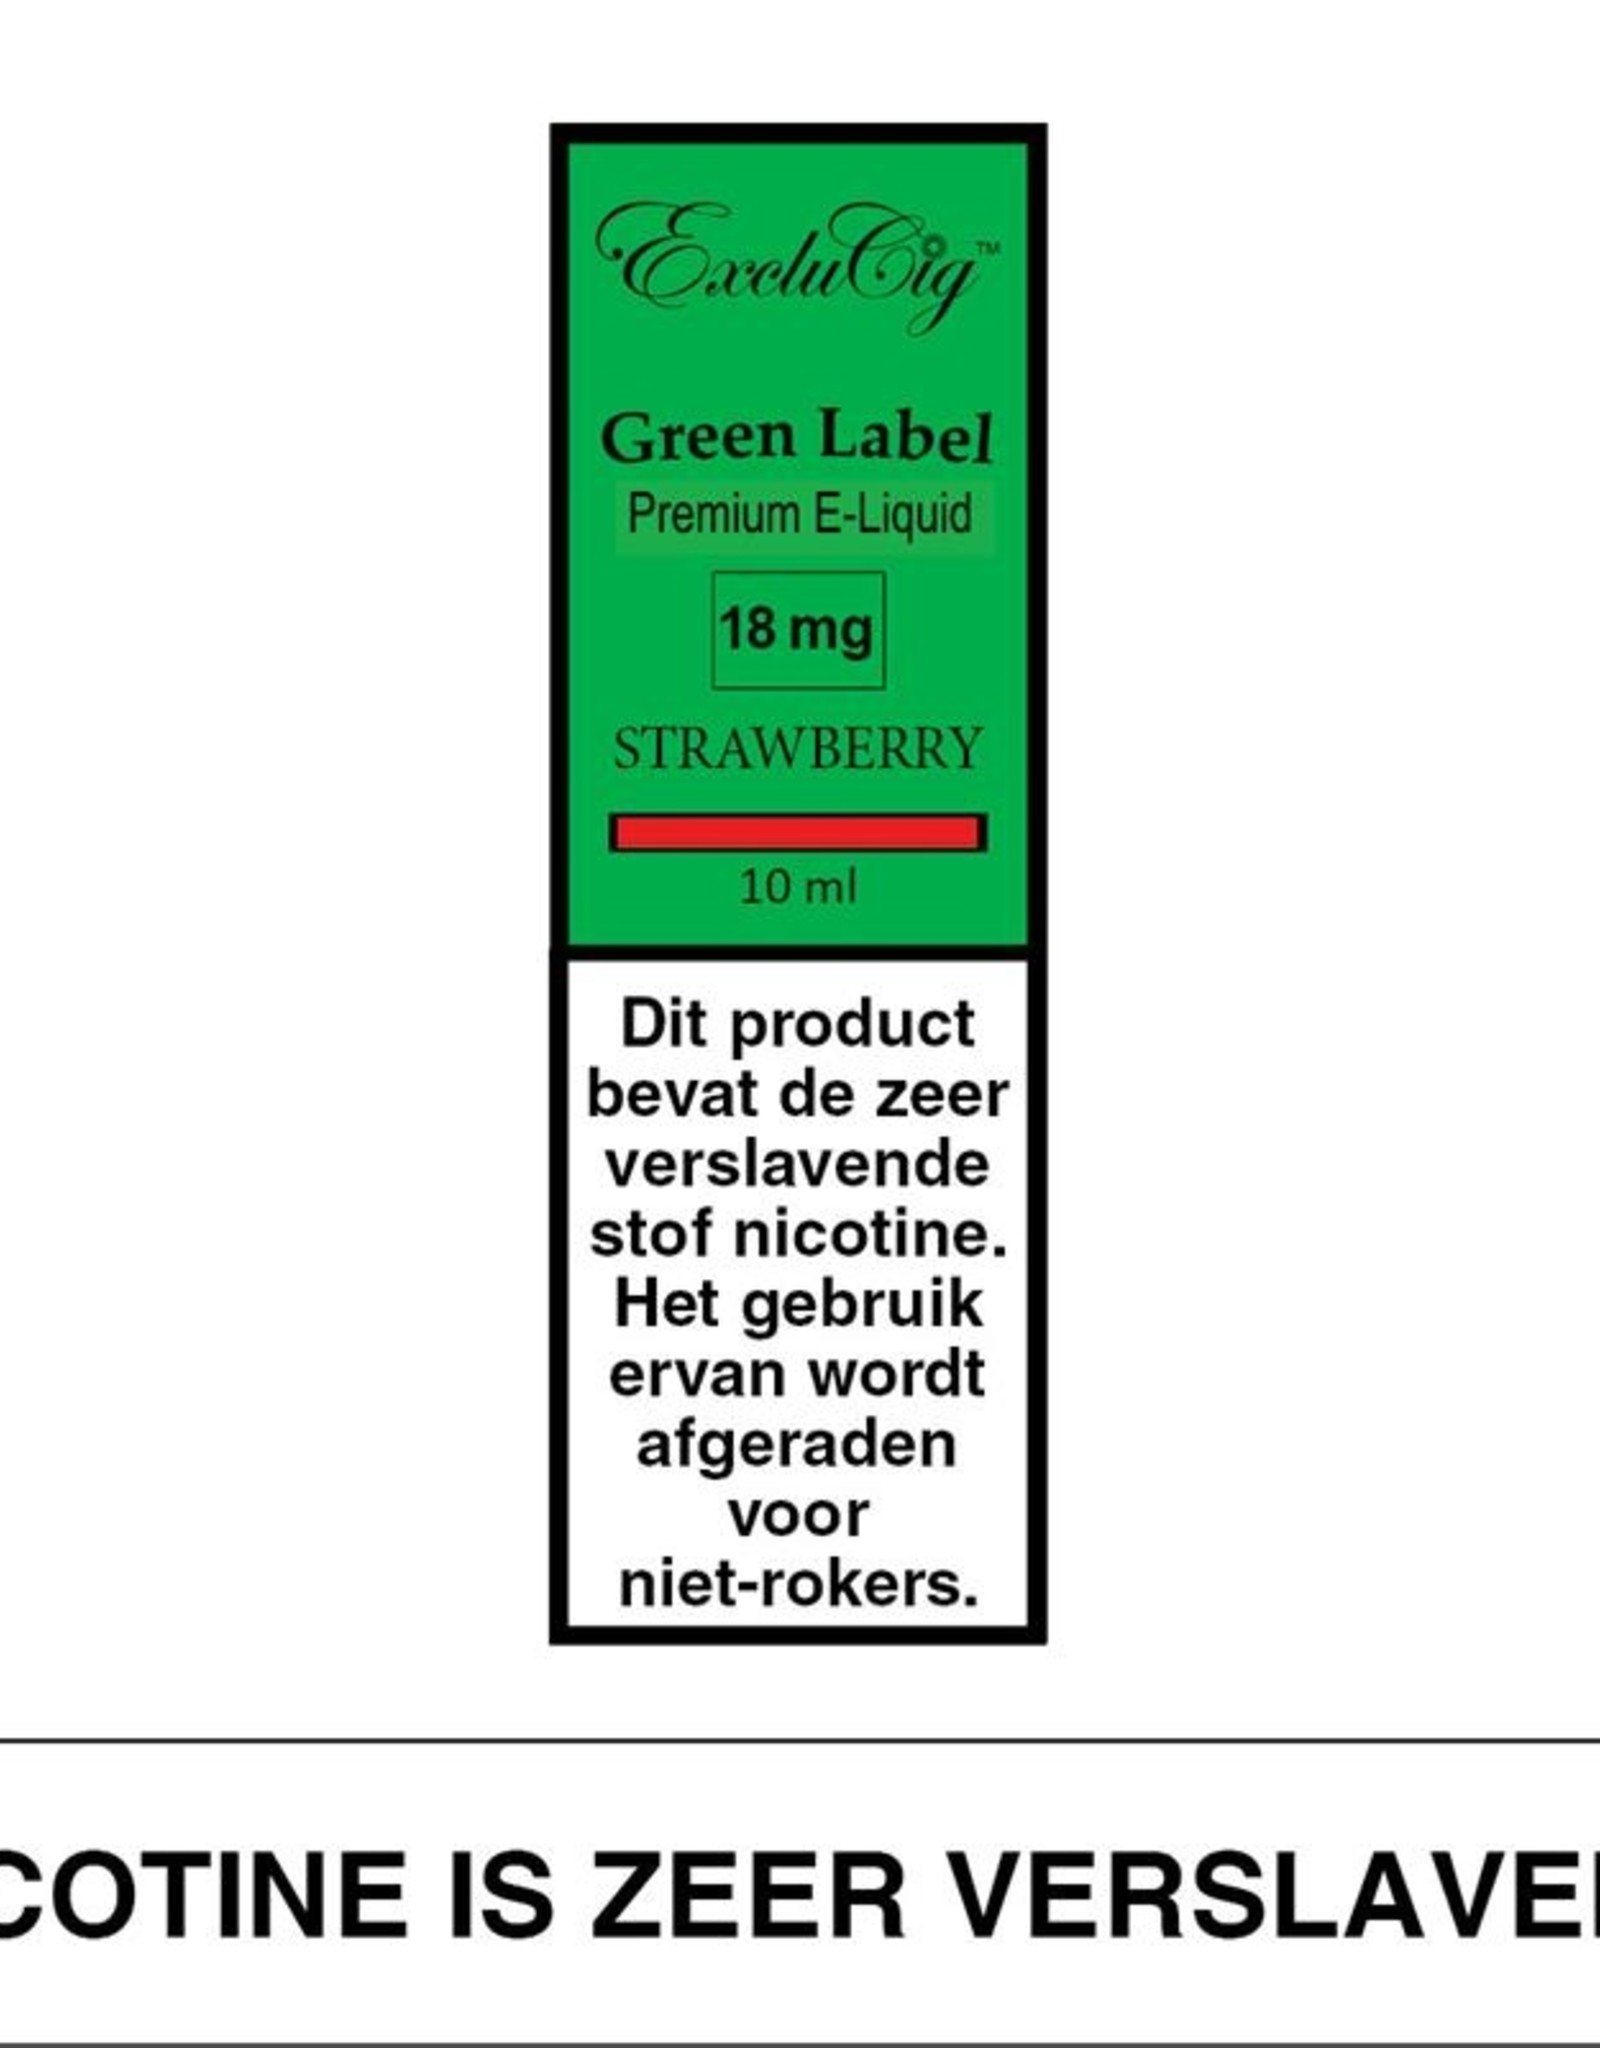 Exclucig Exclucig Green Label E-liquid Strawberry 18 mg Nicotine